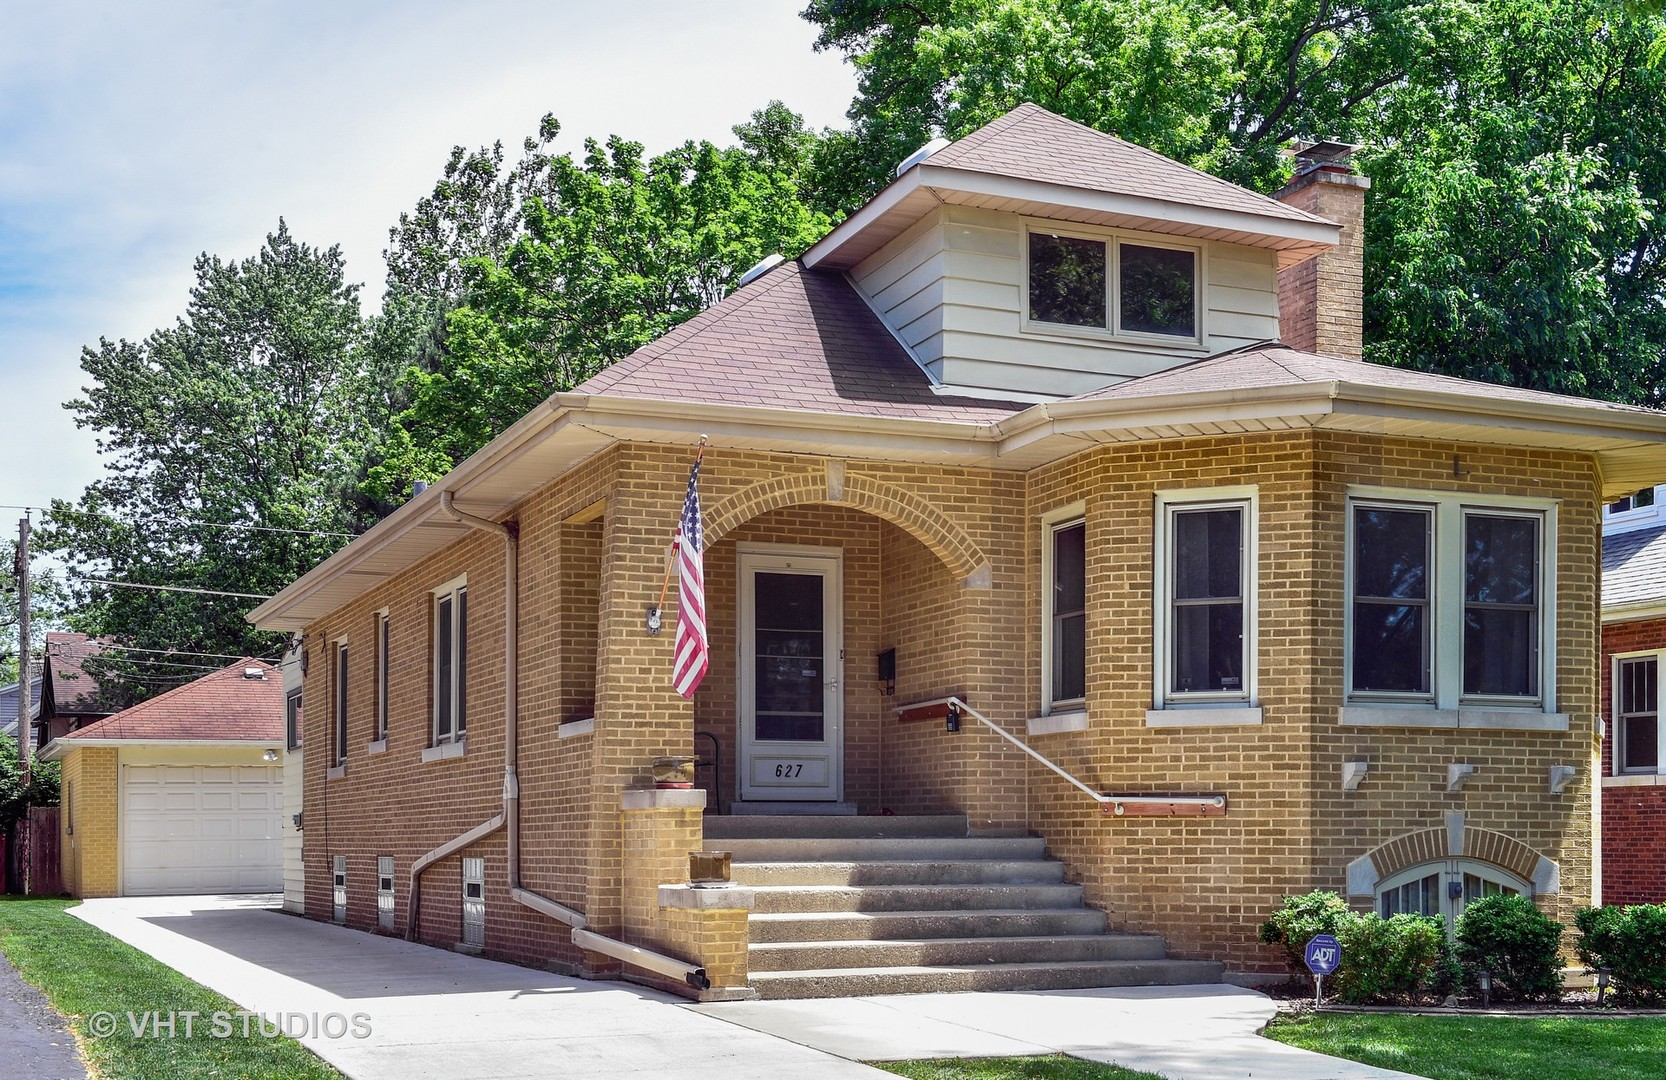 Property for sale at 627 North Brainard Avenue, La Grange Park,  Il 60526